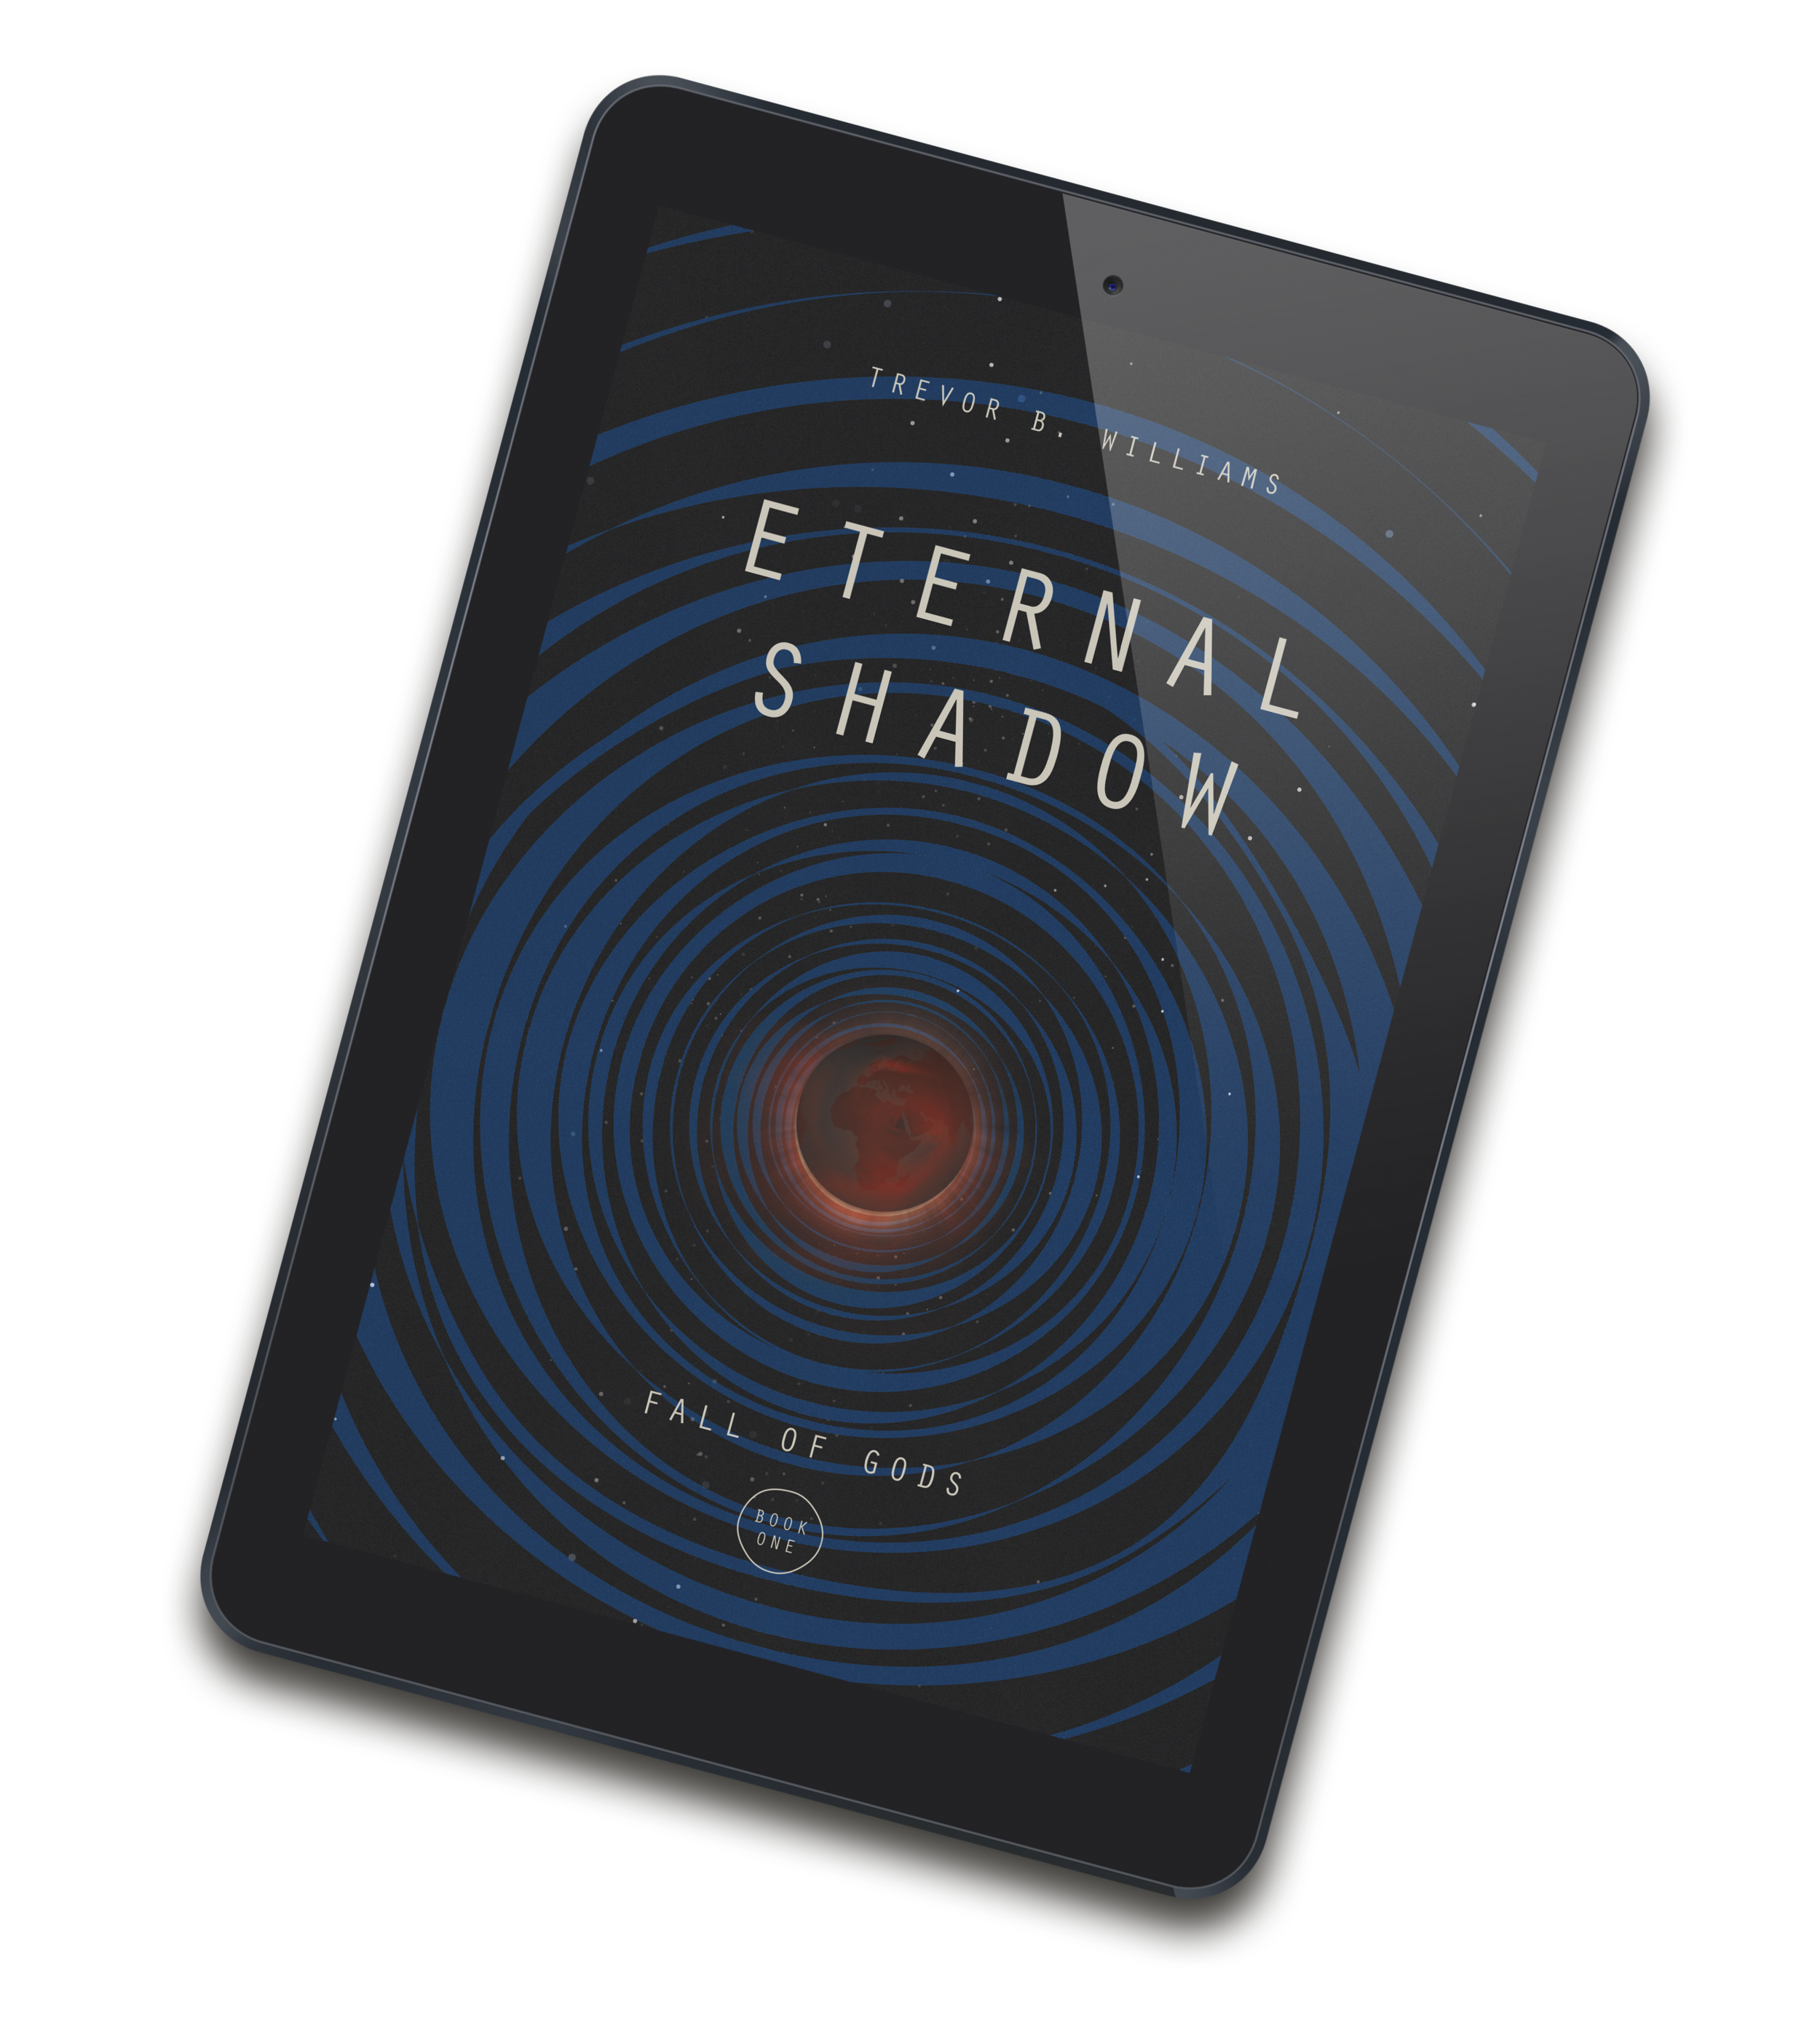 Book - eBook on Tablet - no background.png